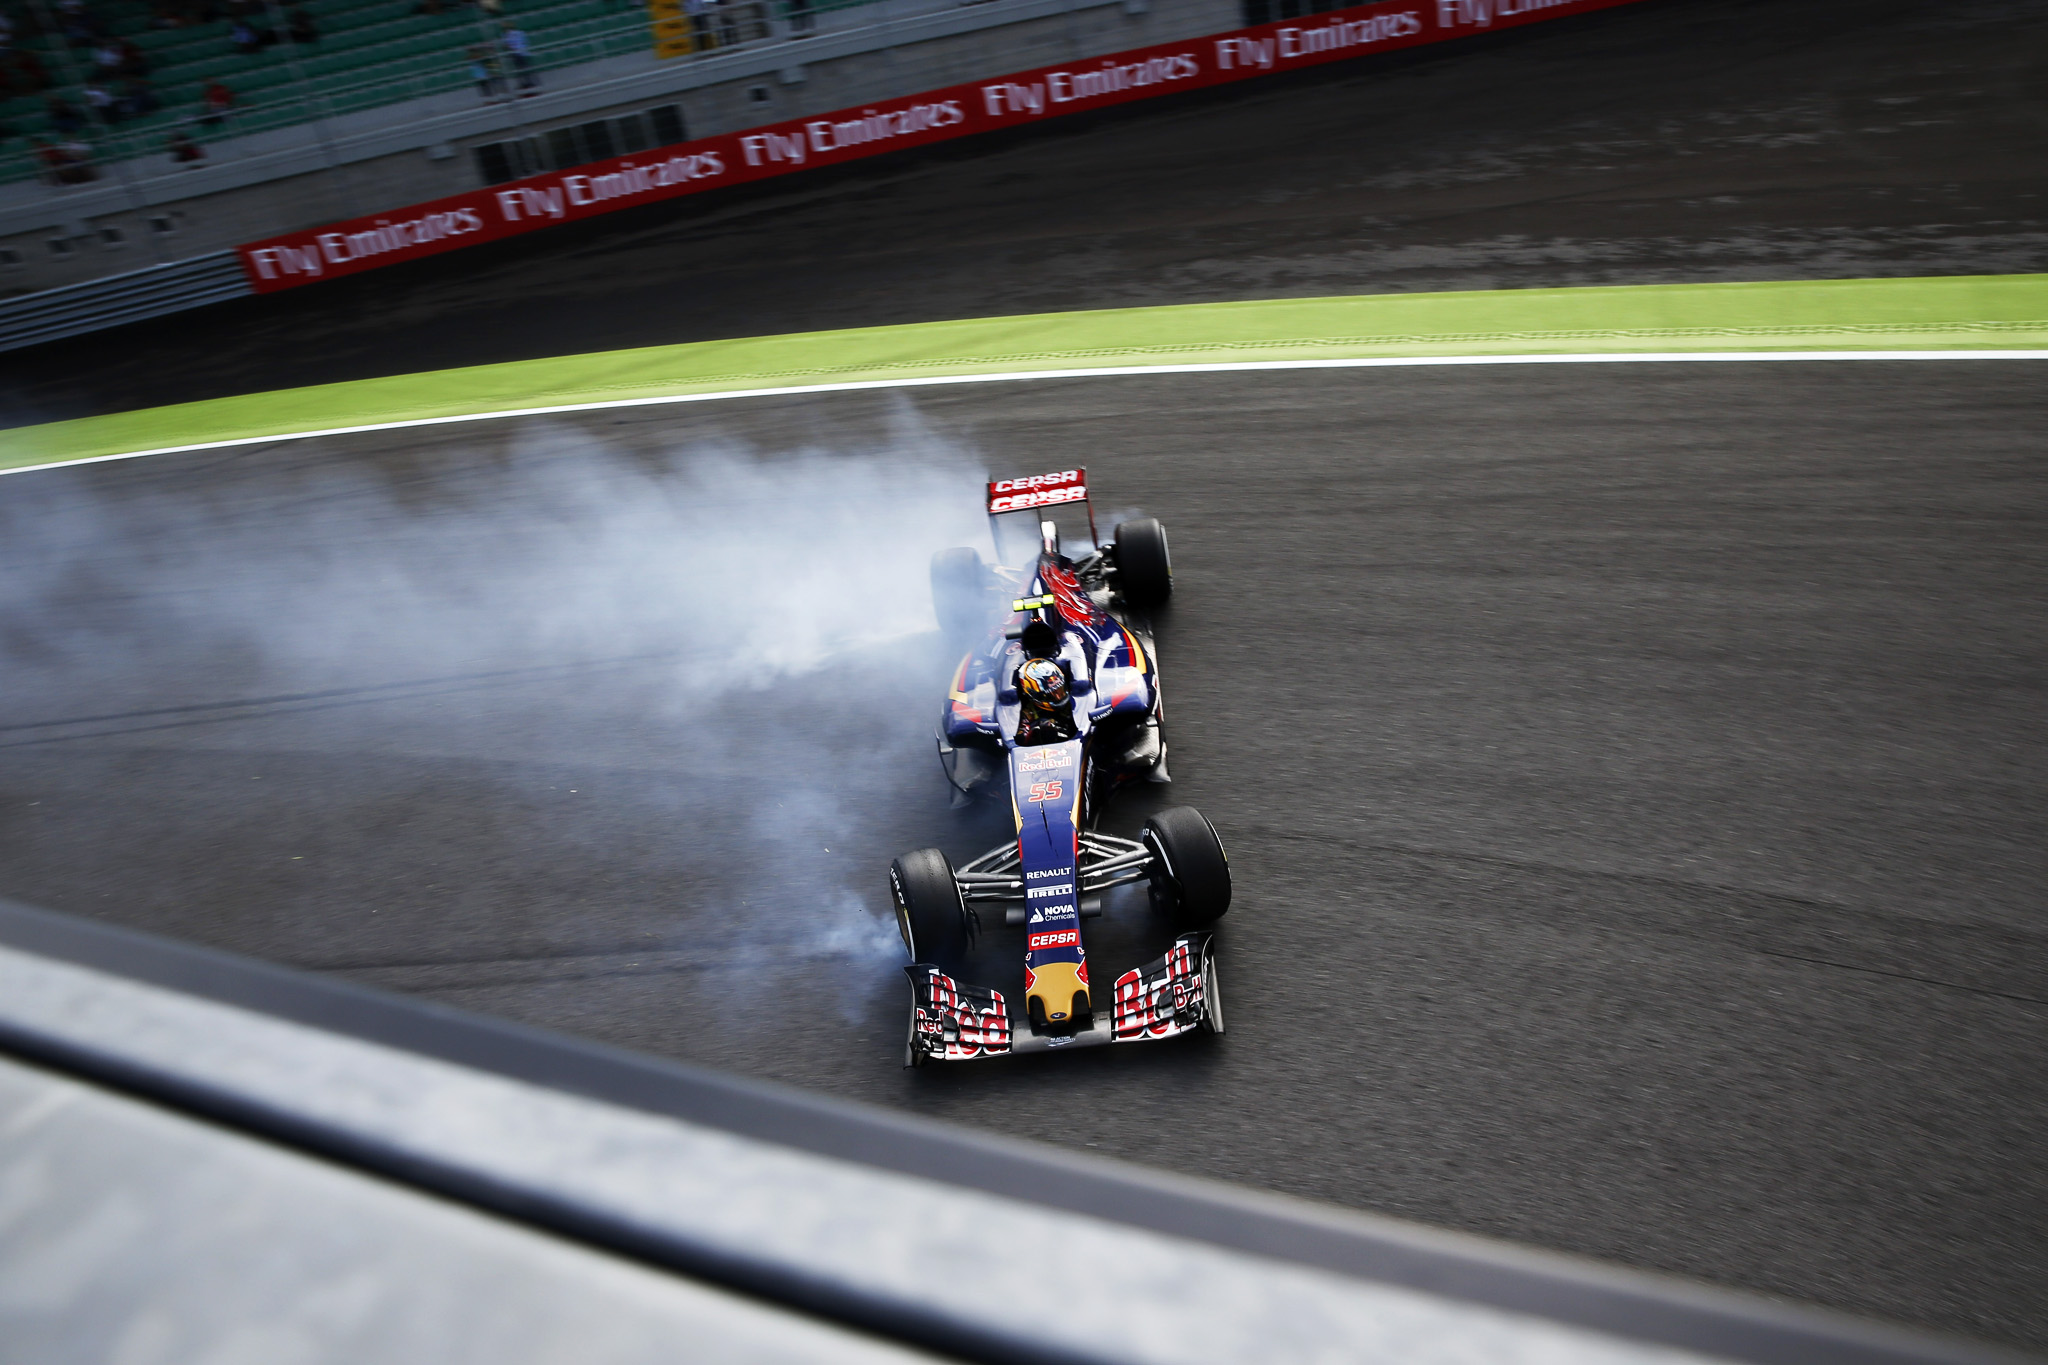 Toro Rosso driver Carlos Sainz Jr. of Spain goes off the track at the parabolic turn  during the first free practice at the Monza racetrack, in Monza, Italy , Friday, Sept. 4 , 2015. The Formula one race will be held on Sunday.